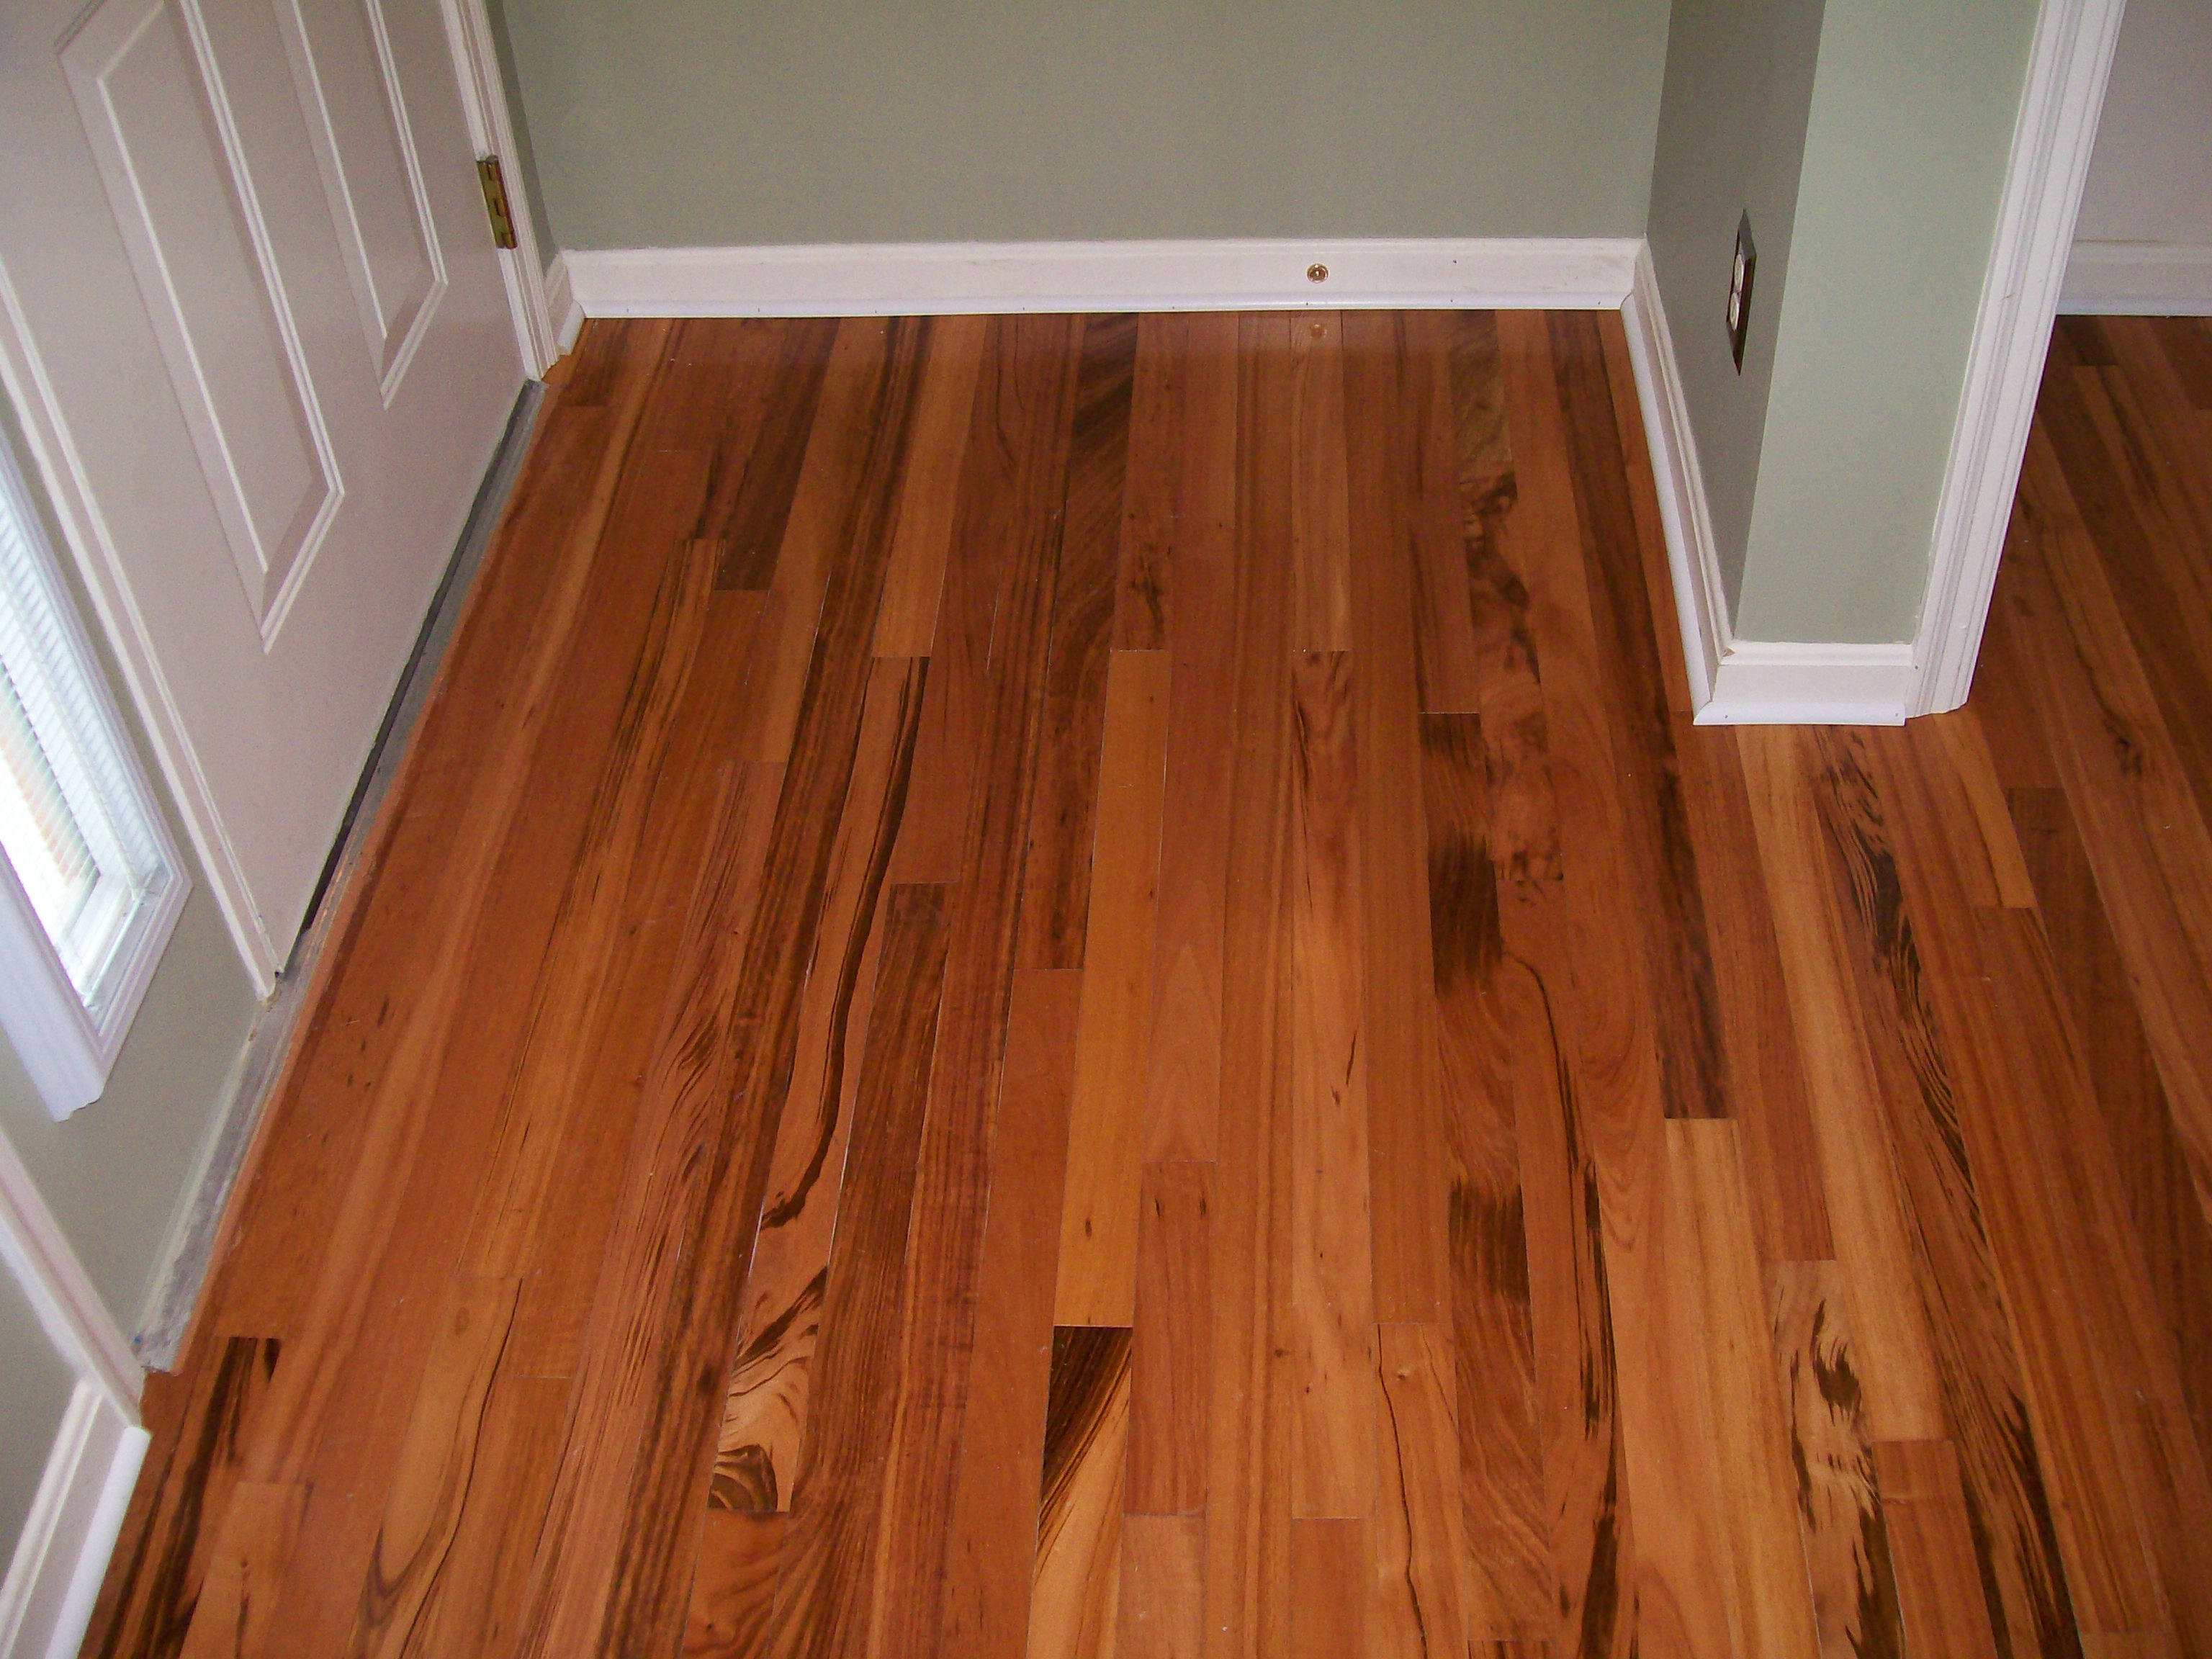 costco wood flooring costco carpeting costco vinyl flooring